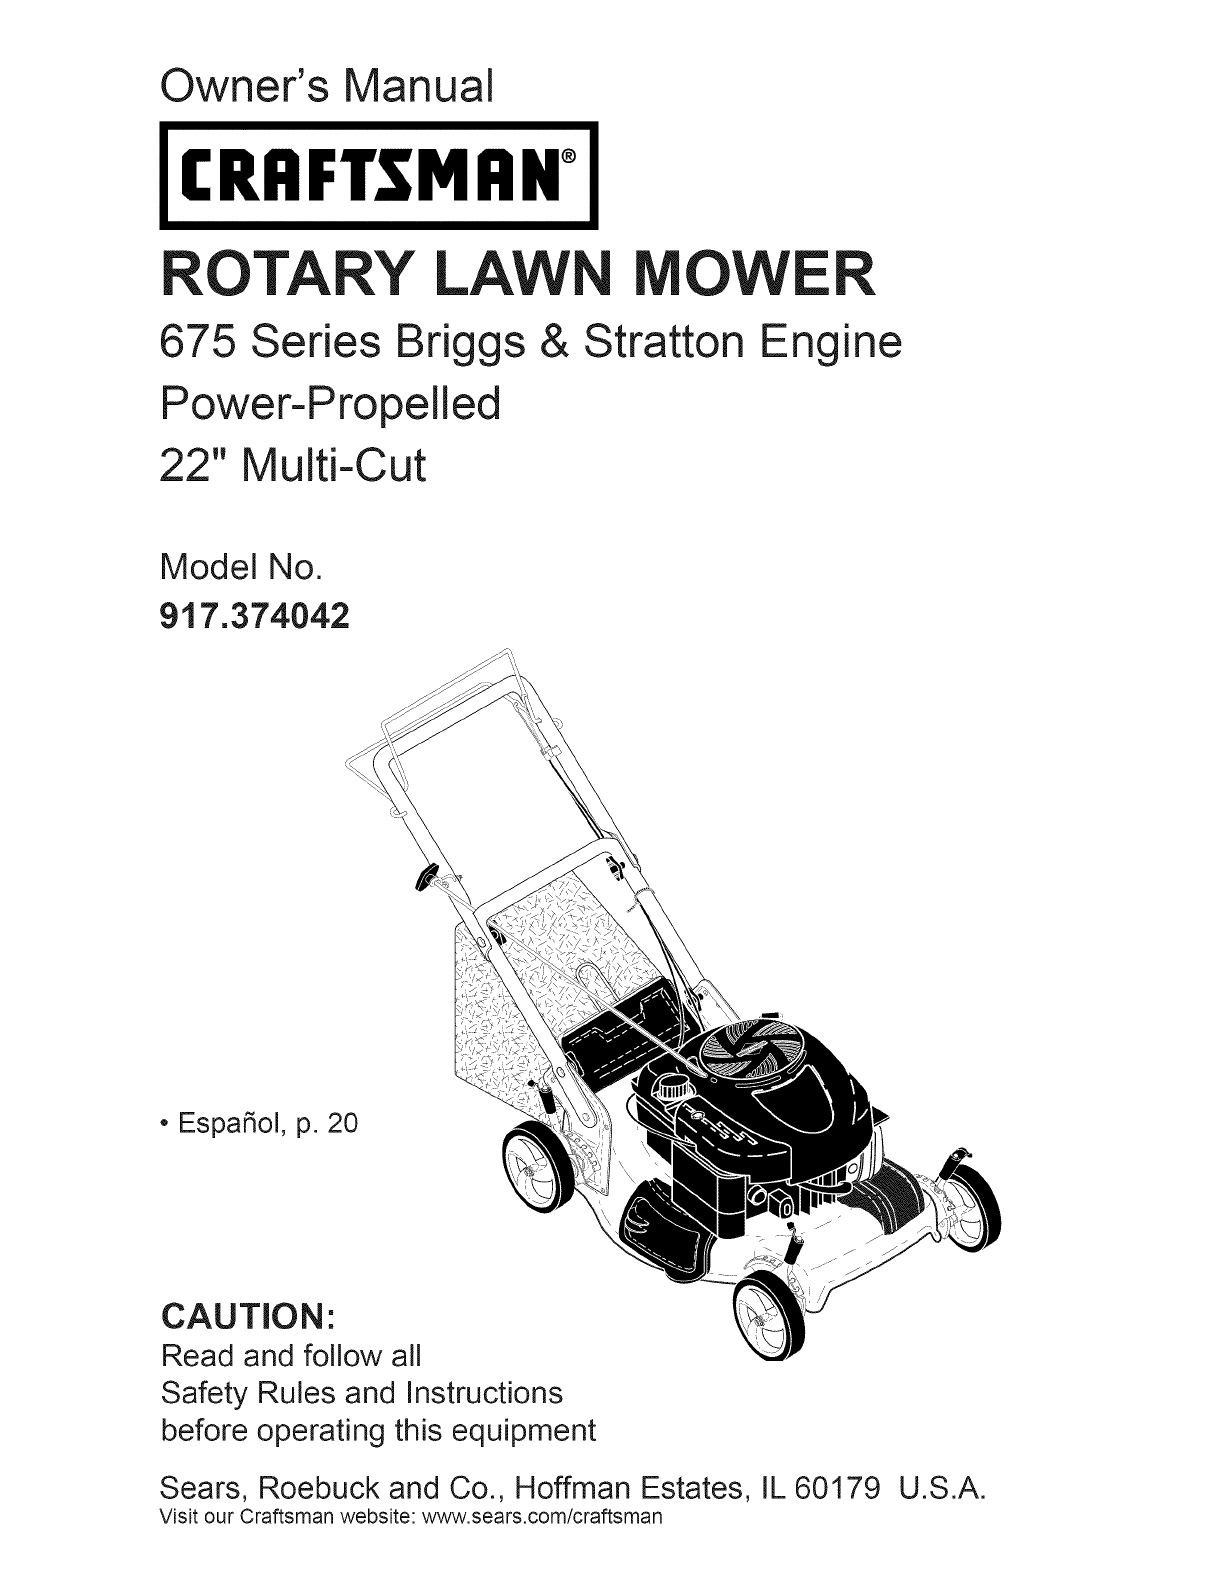 Owner's Manual. CRAFTSMAN°. ROTARY LAWN MOWER